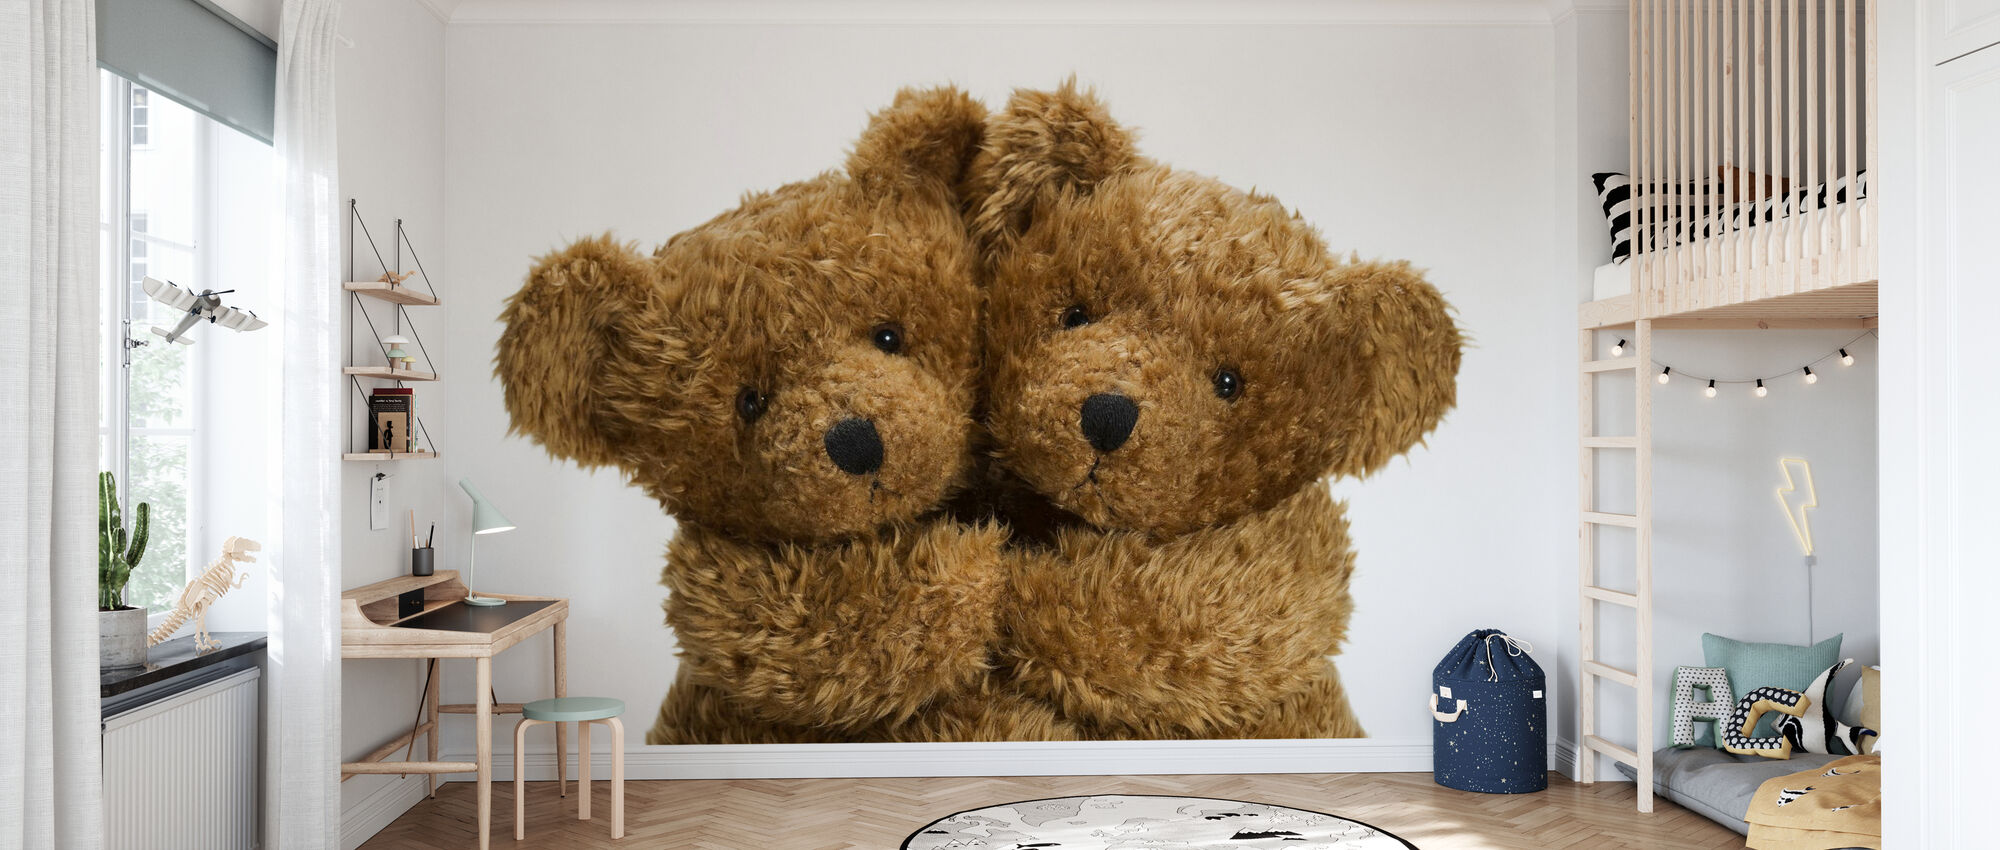 Cuddling Teddy Bears - Wallpaper - Kids Room